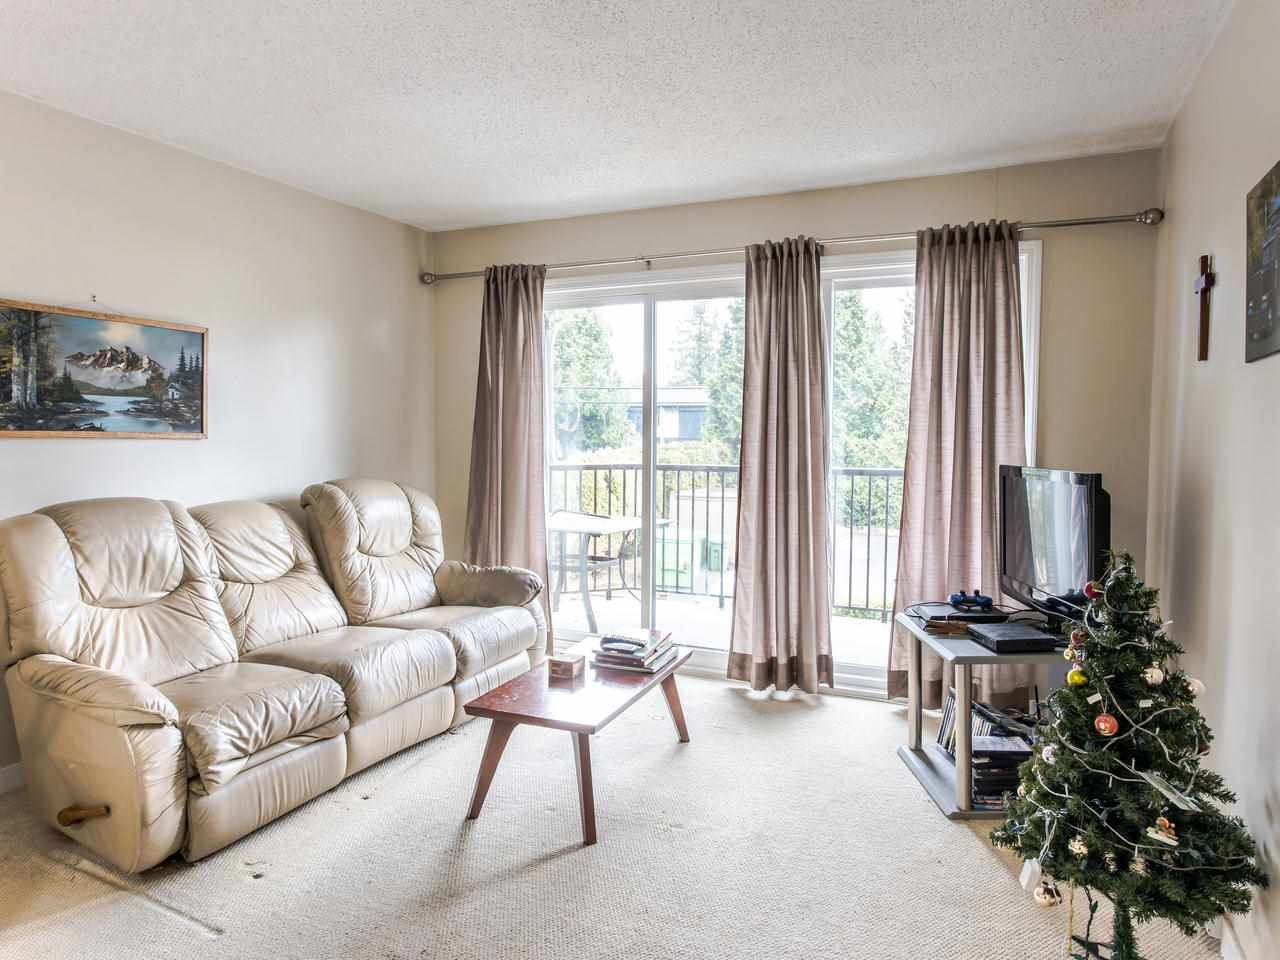 """Main Photo: 206 5191 203 Street in Langley: Langley City Townhouse for sale in """"Longlea"""" : MLS®# R2422119"""